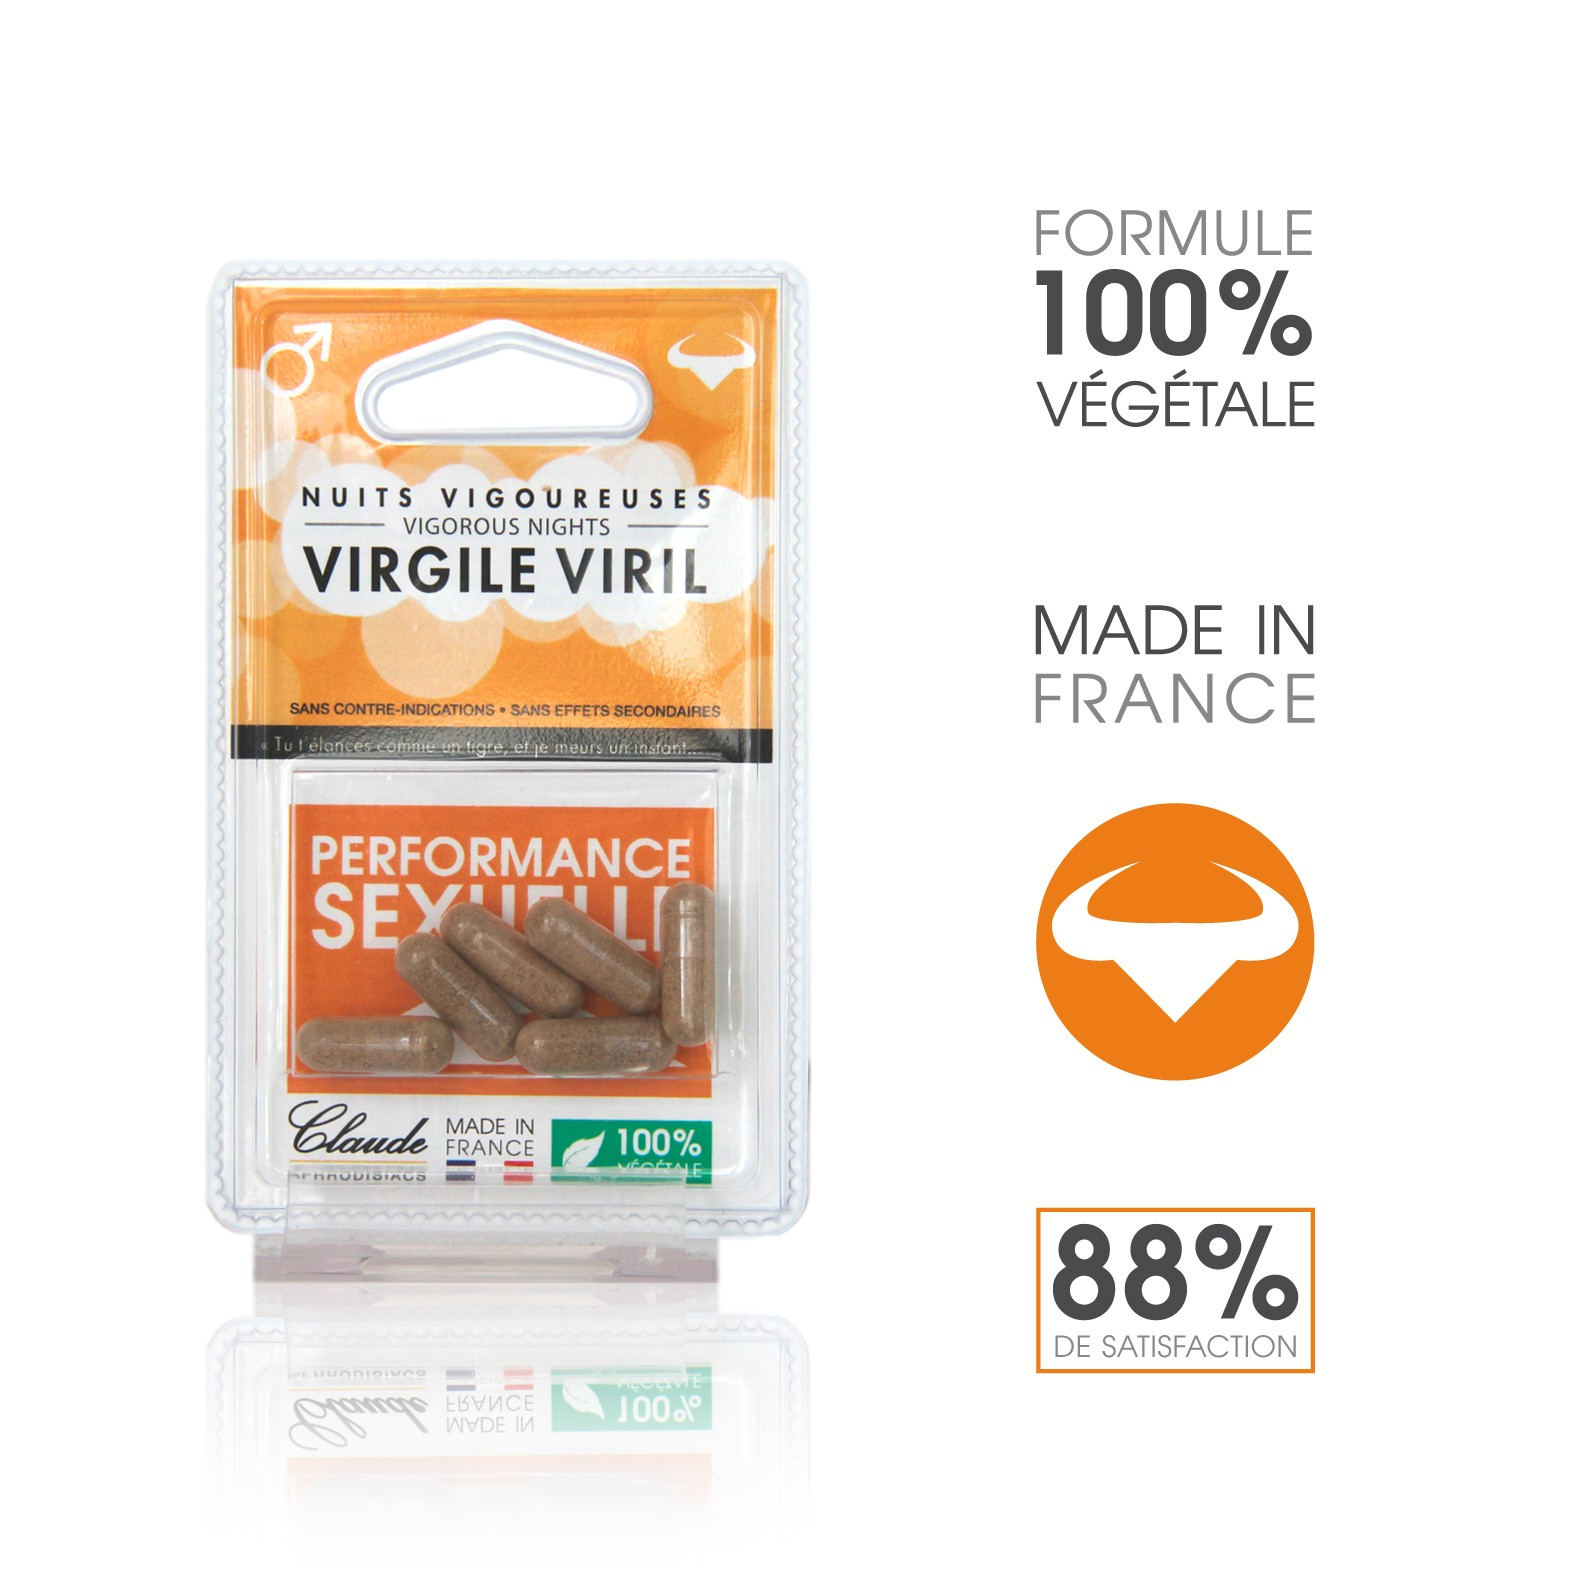 Blister de 6 Gélules VIrgile Viril Provocateur d'Erection